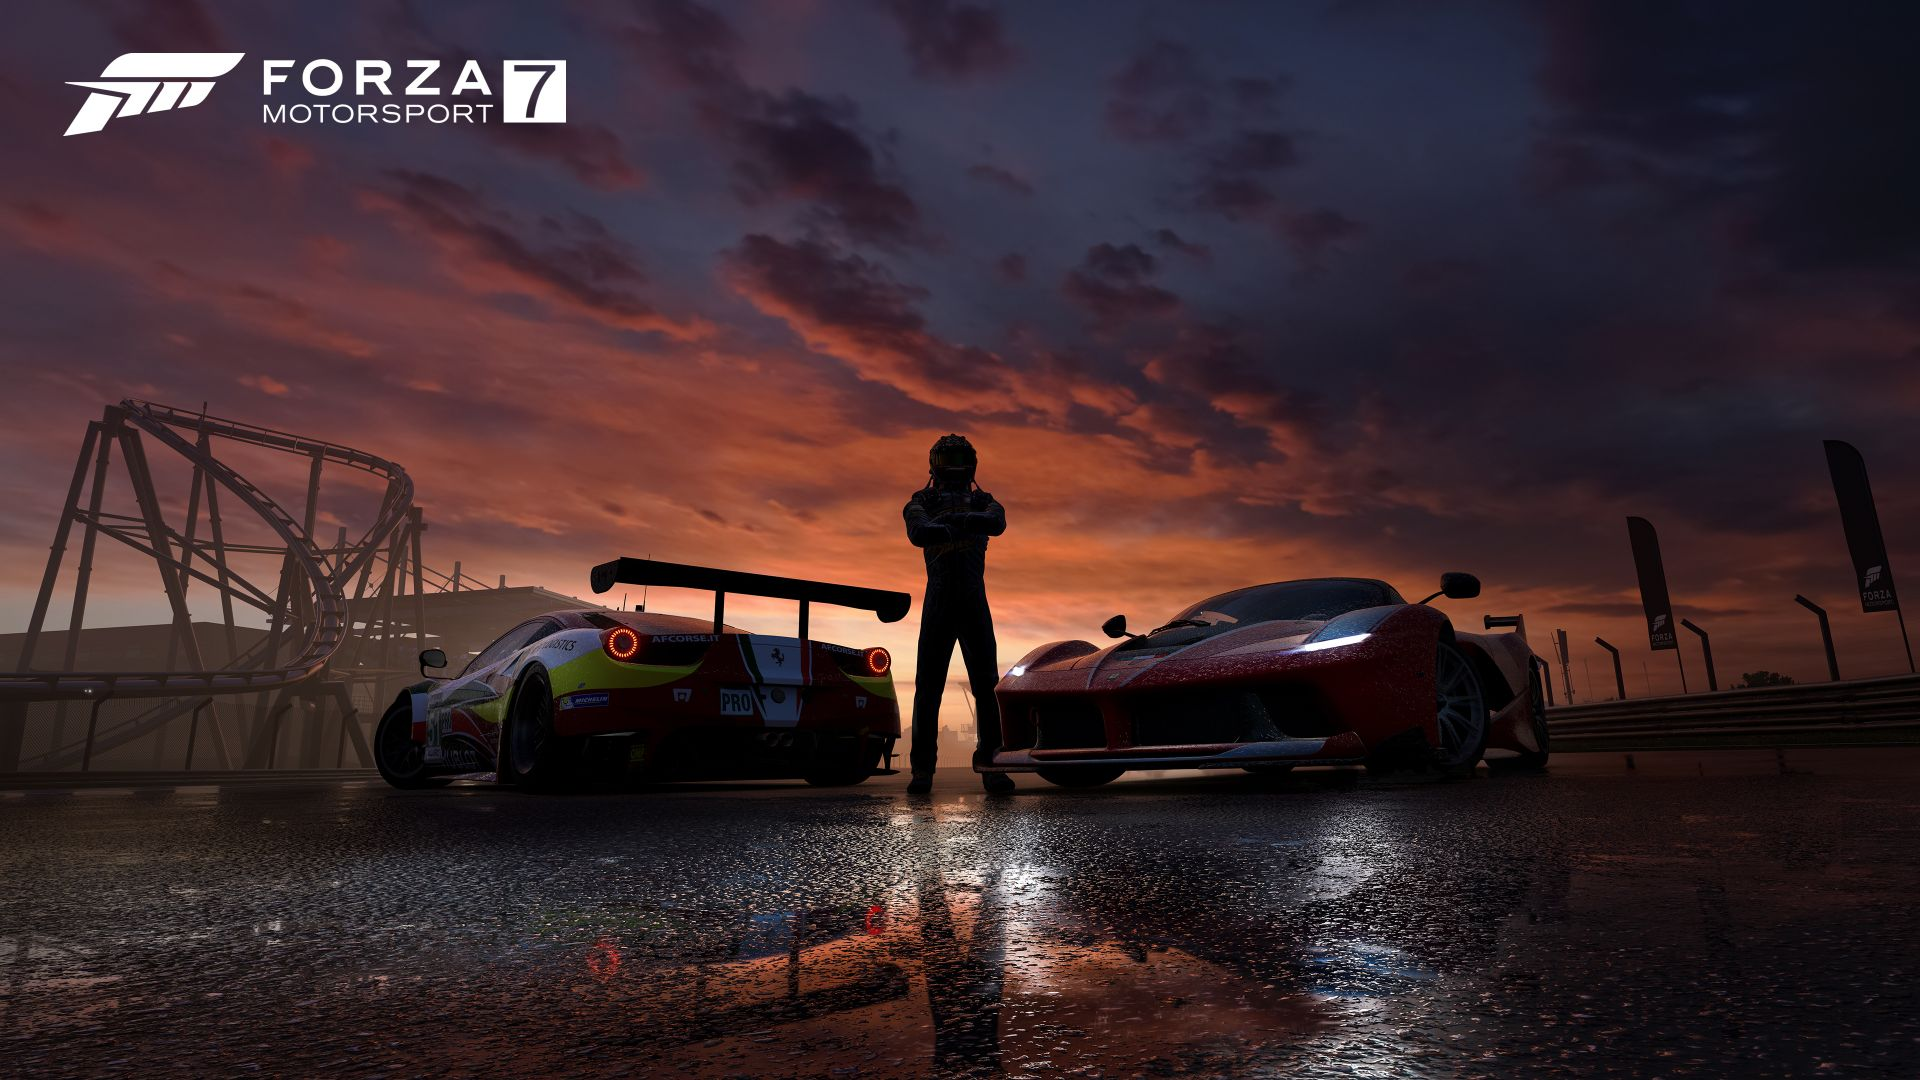 Forza Motorsport 7, 4k, E3 2017, Xbox One X (horizontal)